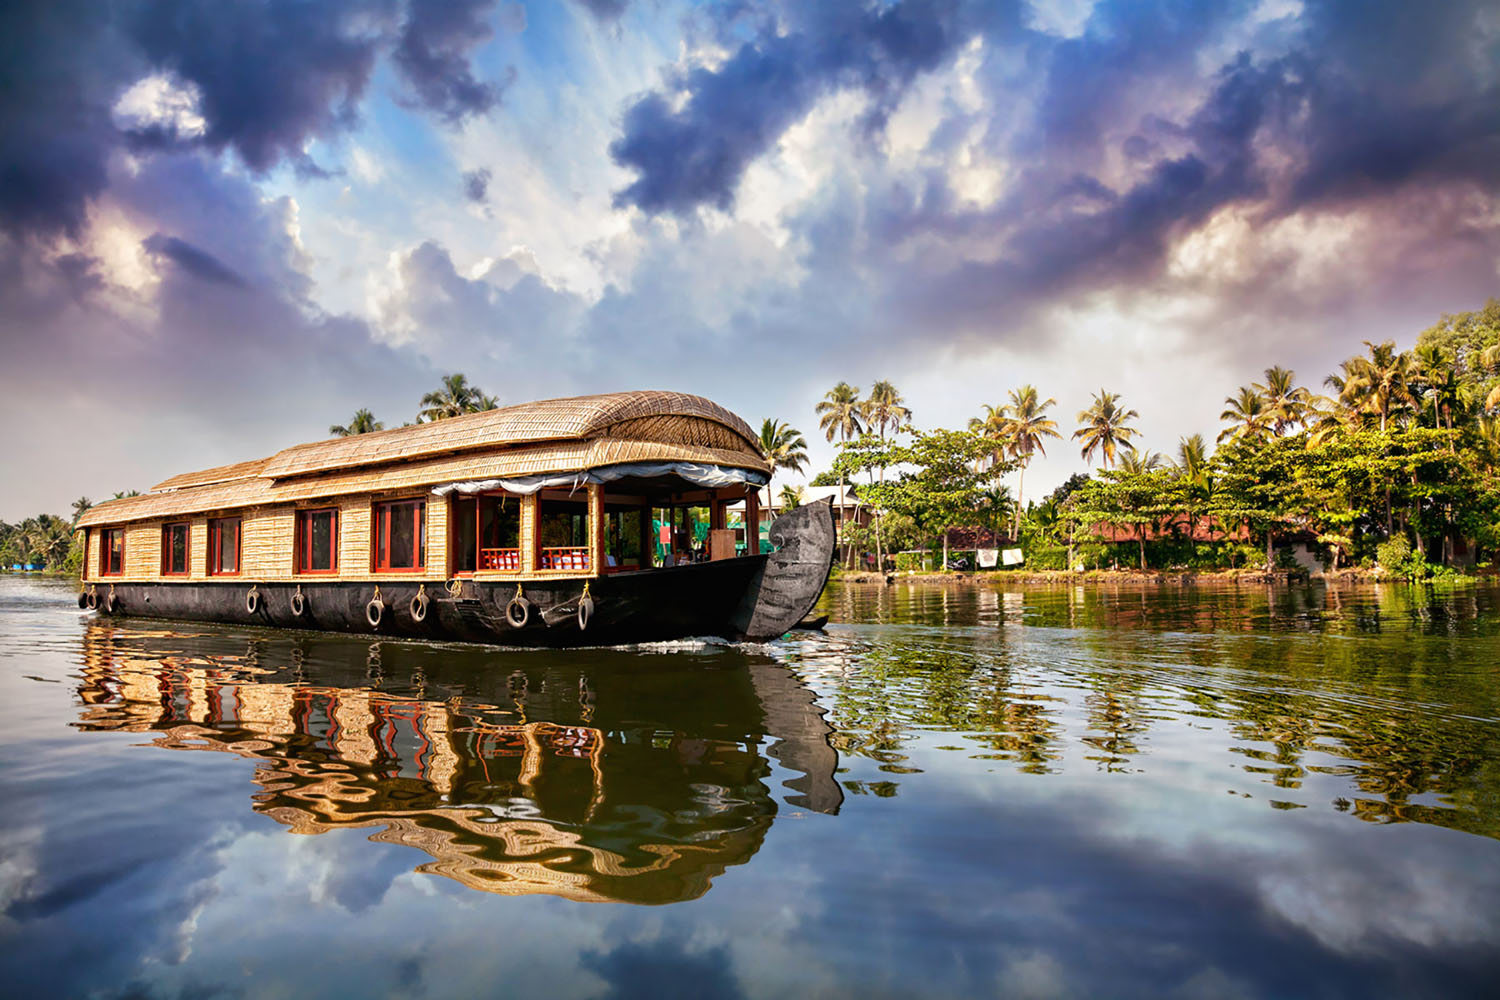 A river boat in Kerala, Sri Lanka.